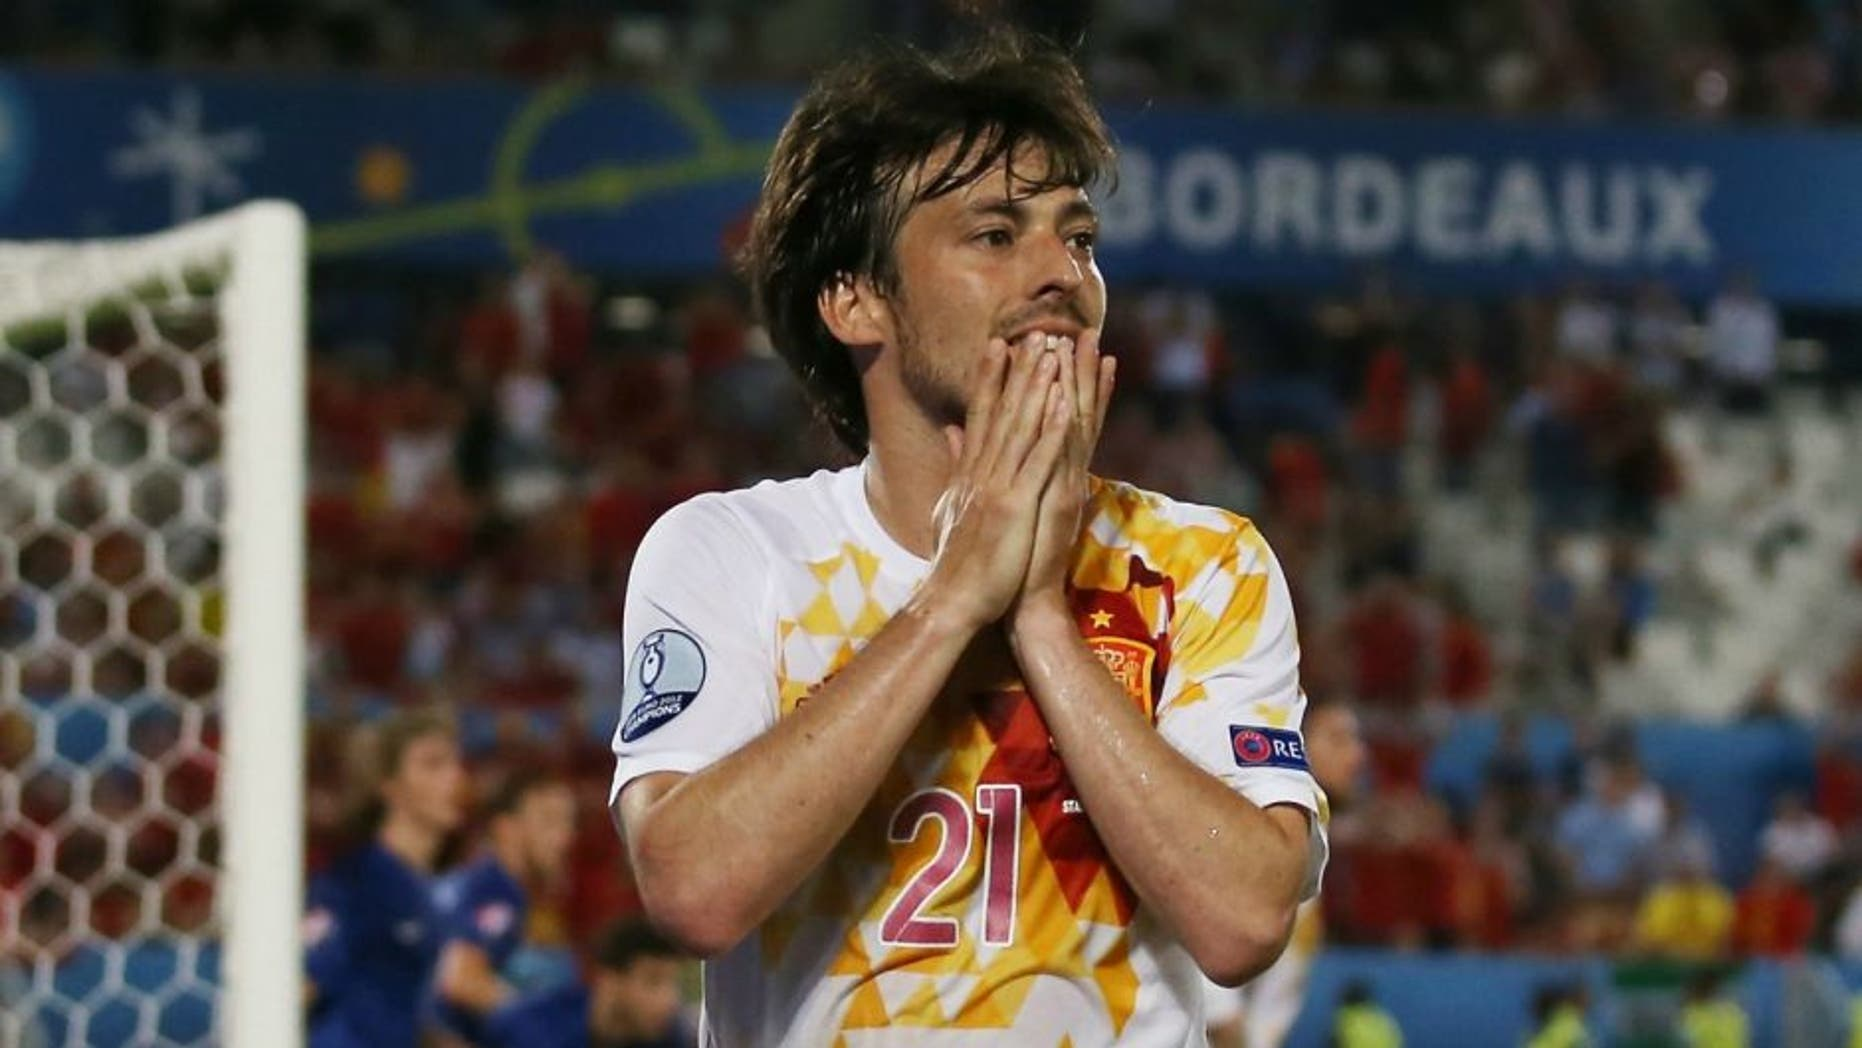 xxx of Croatia is challenged by yyy of Spain during the UEFA EURO 2016 Group D match between Croatia and Spain at Stade Matmut Atlantique on June 21, 2016 in Bordeaux, France.